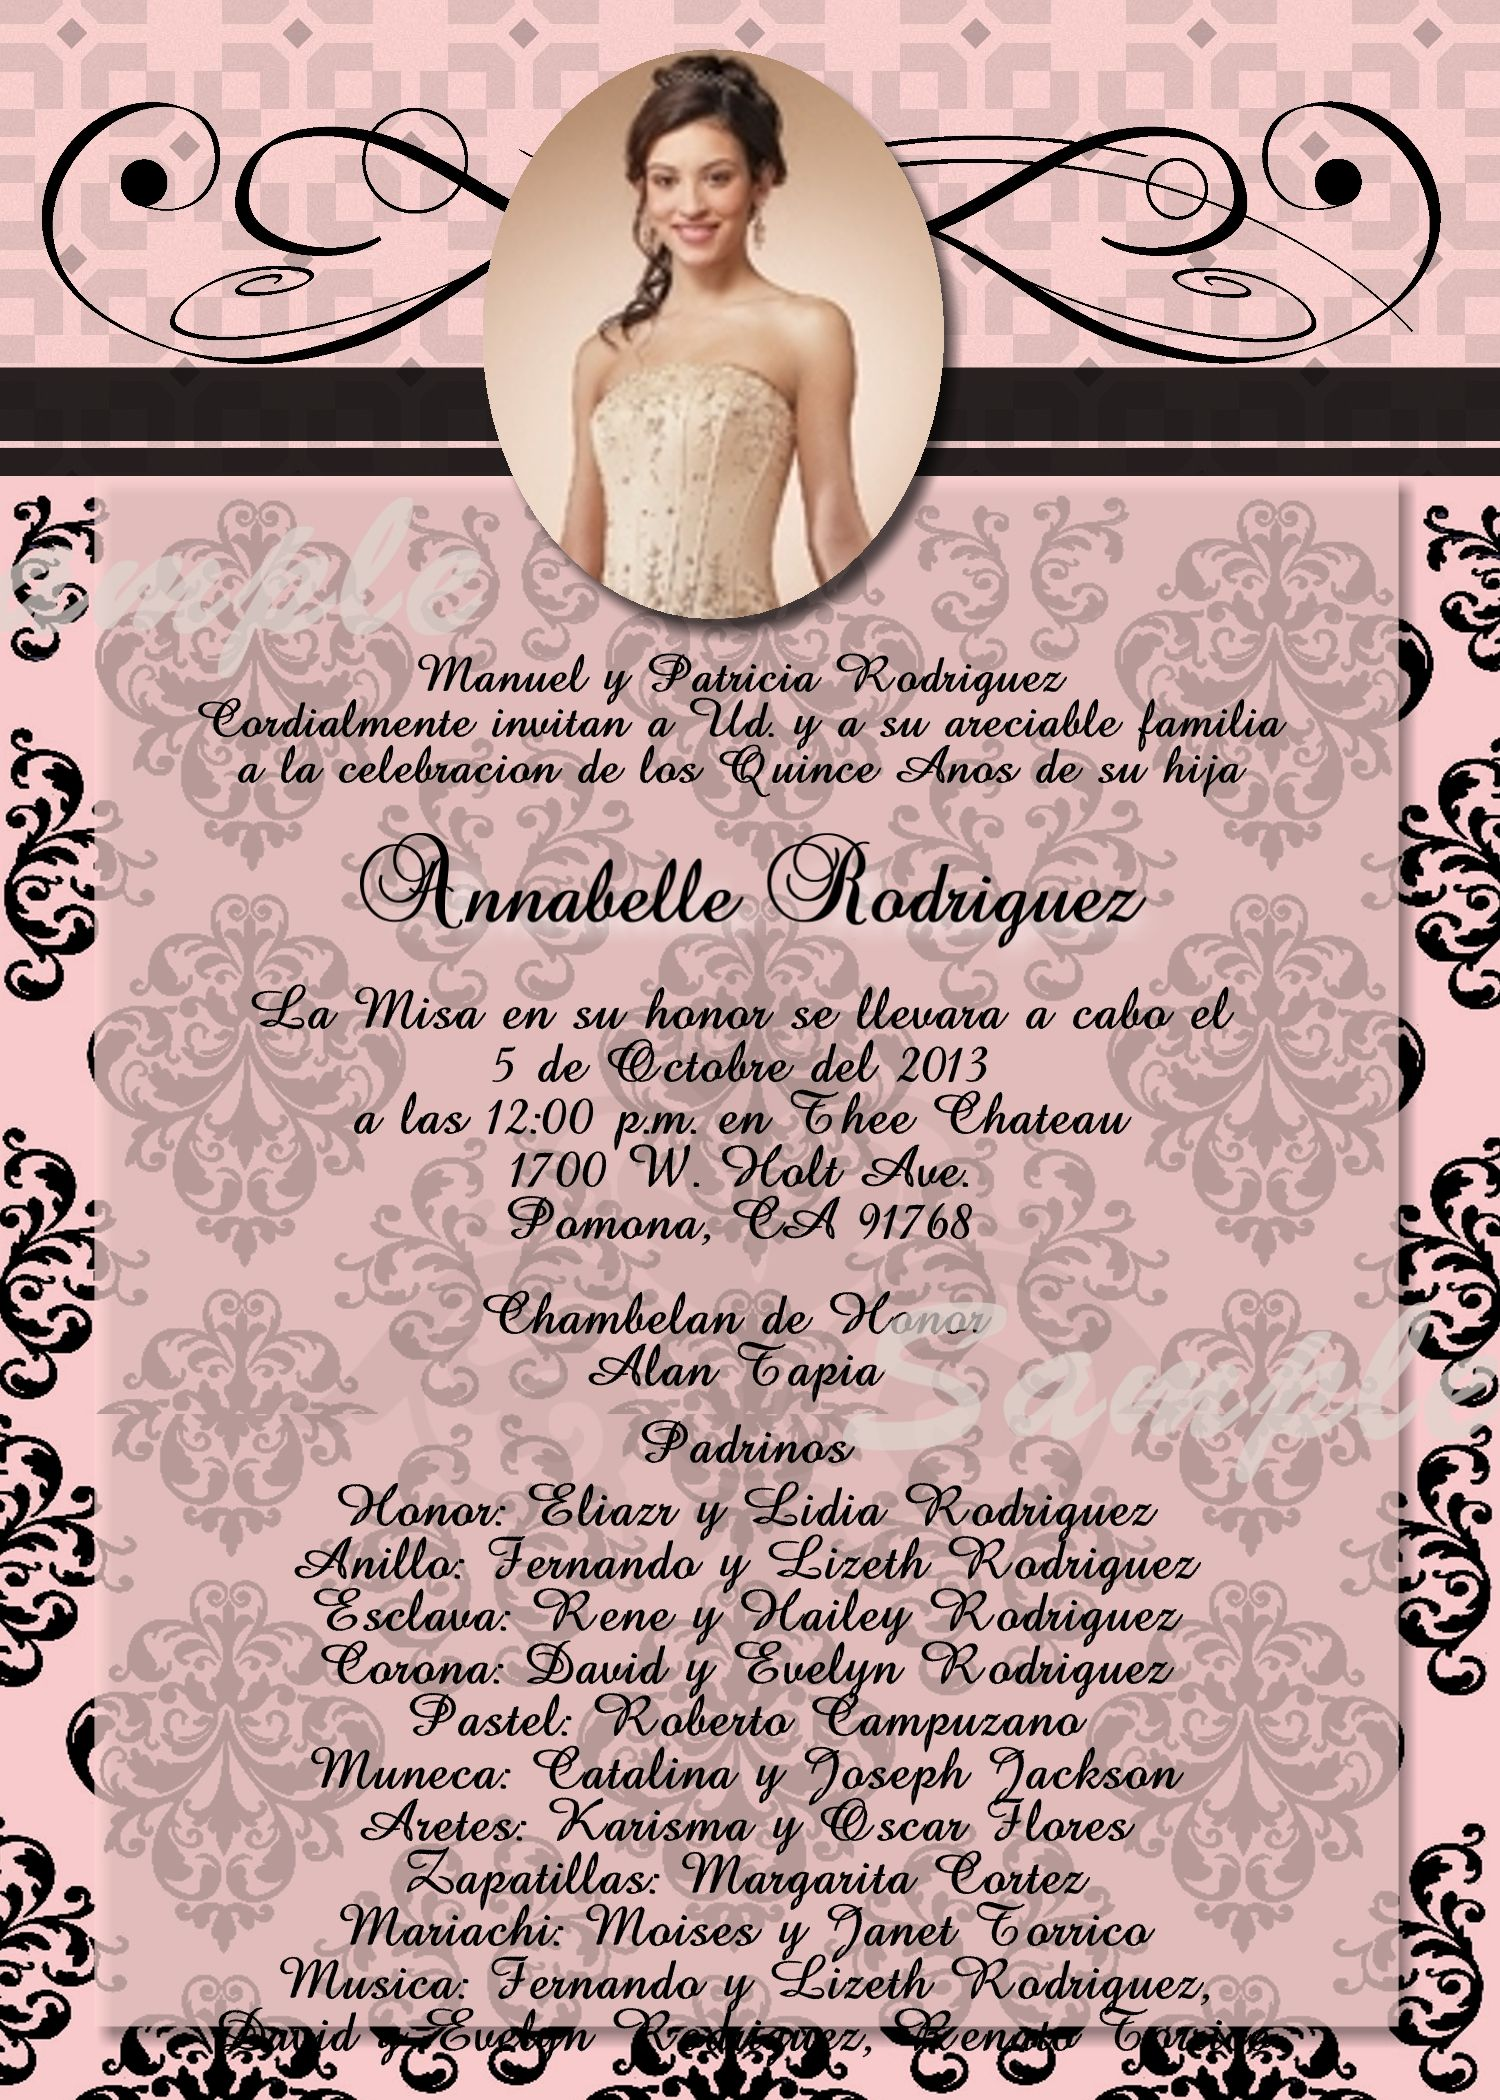 Qinceanera invitation sweet 16 digital and printable invite in paris theme quinceanera sweet sixteen birthday invitation invitation is customized to either or high resolution digital file jpeg which you can print solutioingenieria Choice Image